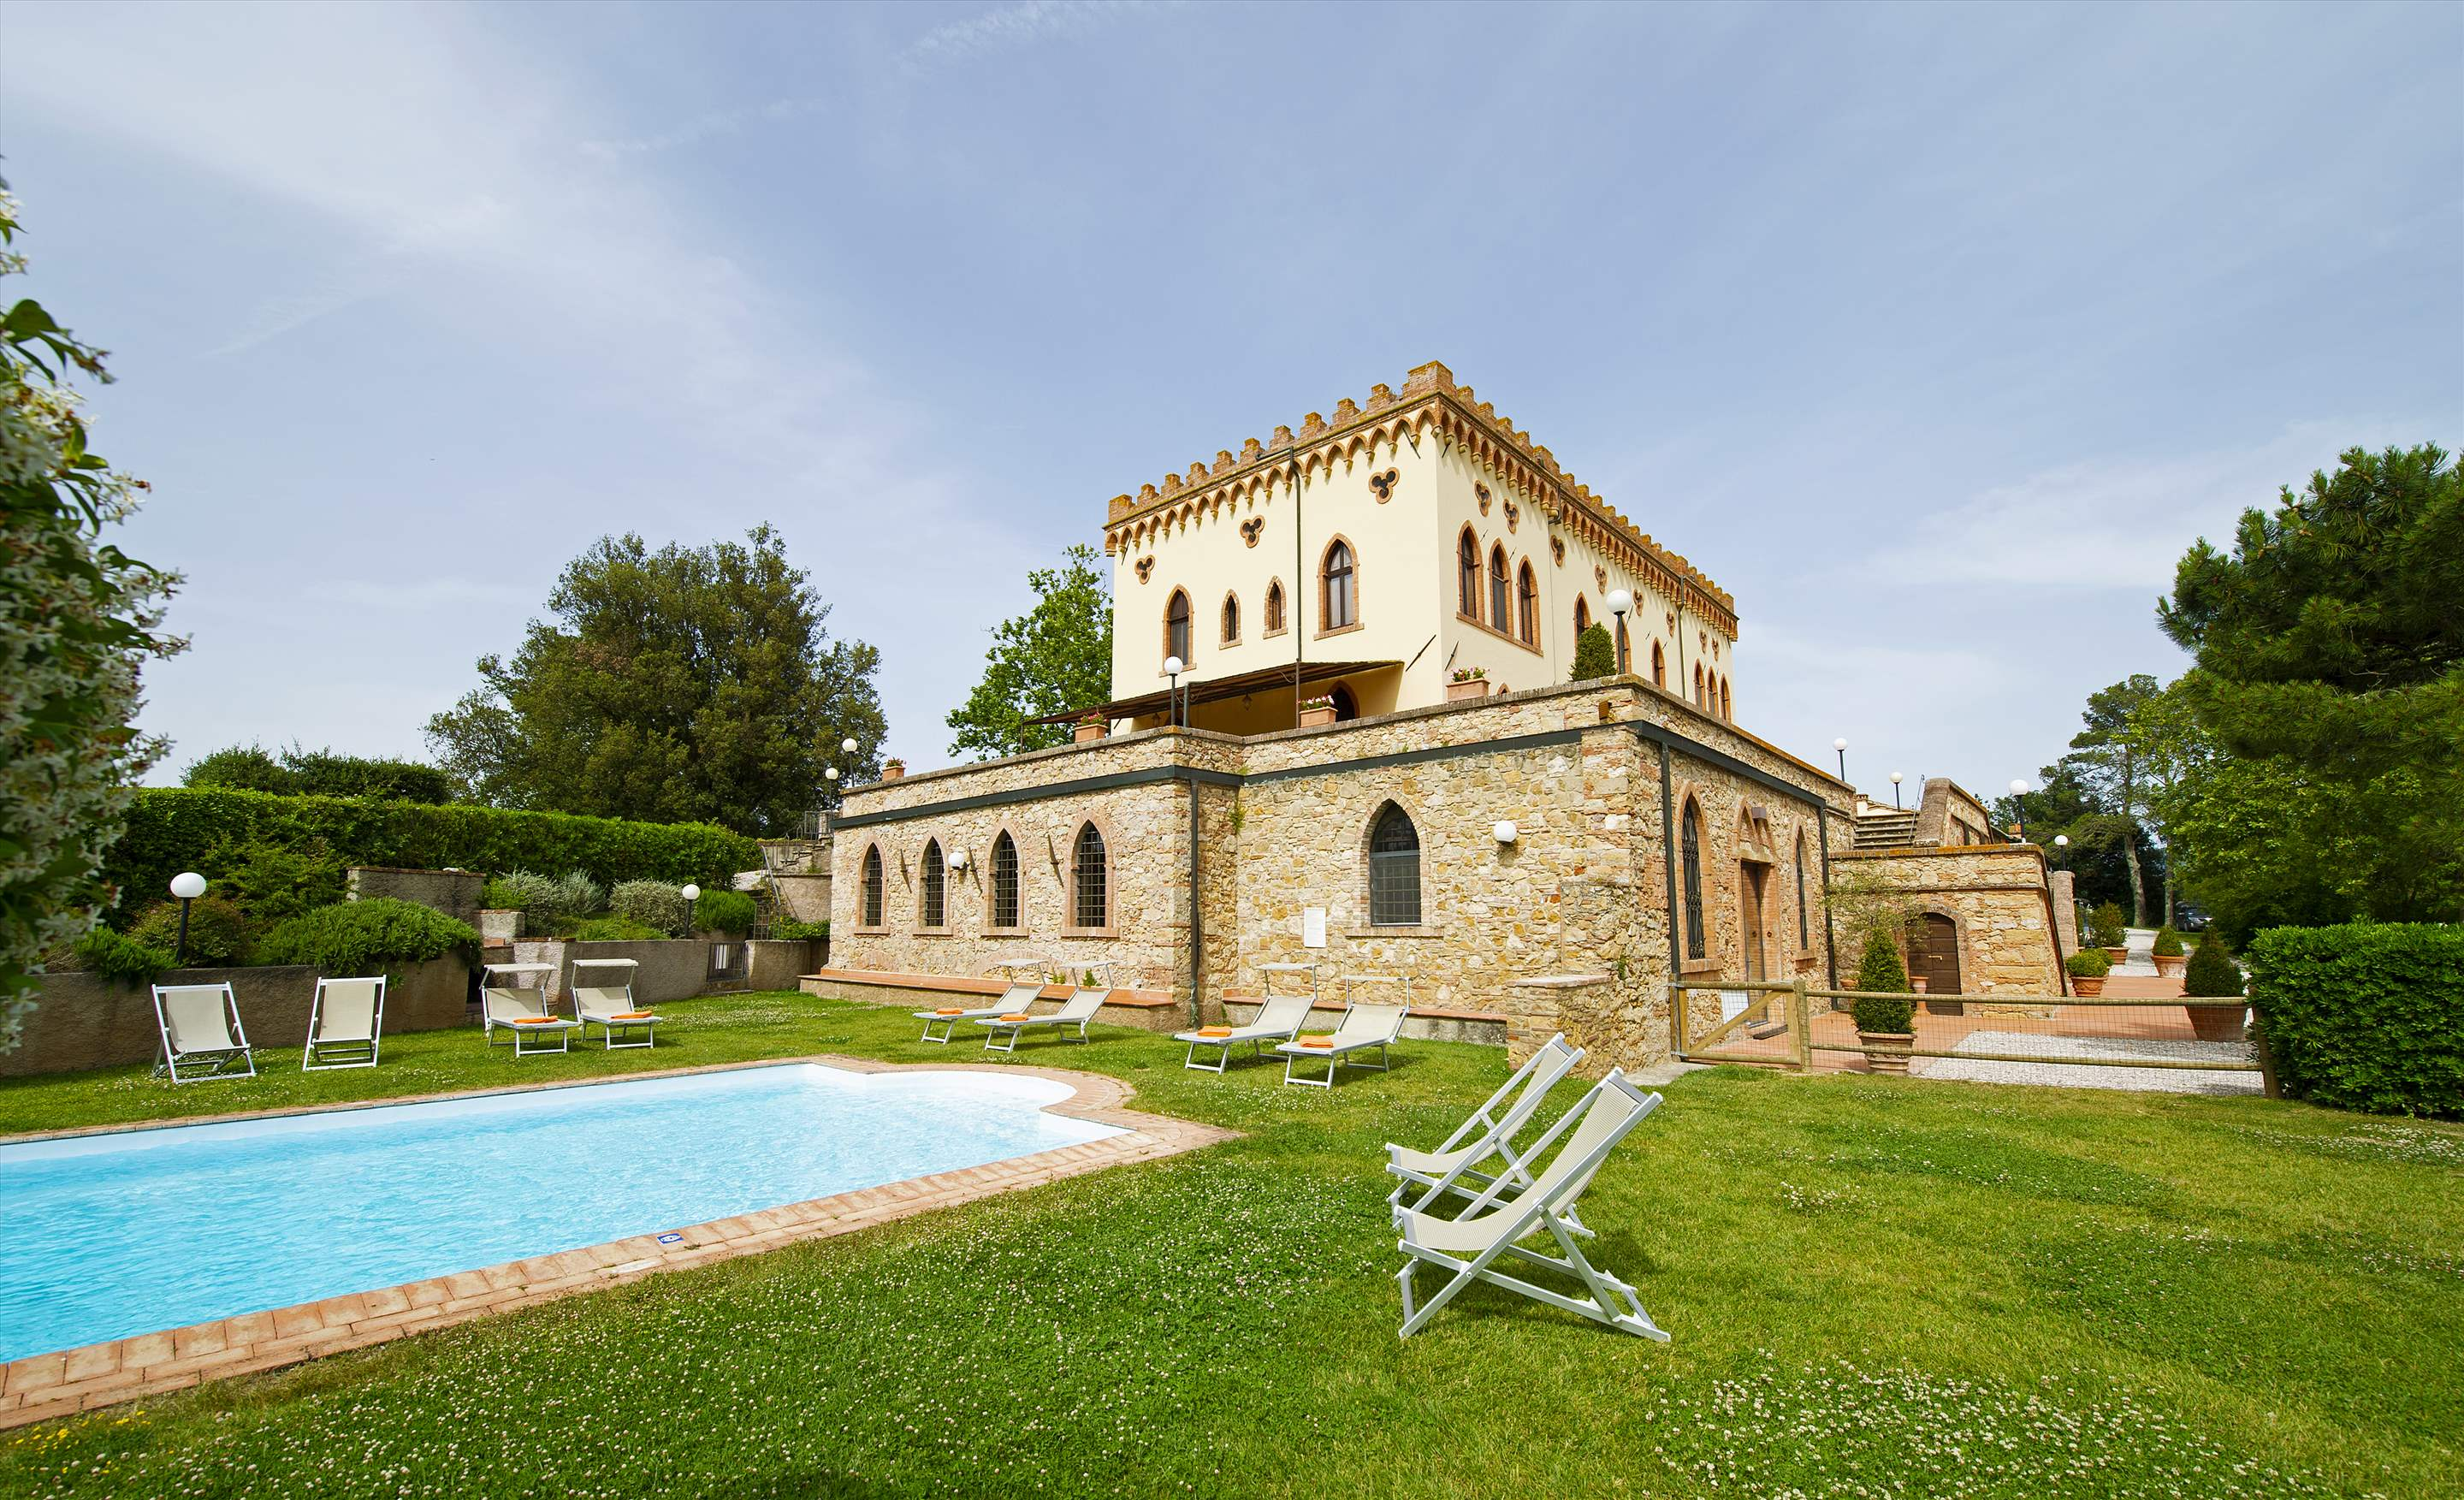 Villa Di Archi & Dependance, 9 bedroom villa in Tuscany Coast, Tuscany Photo #42